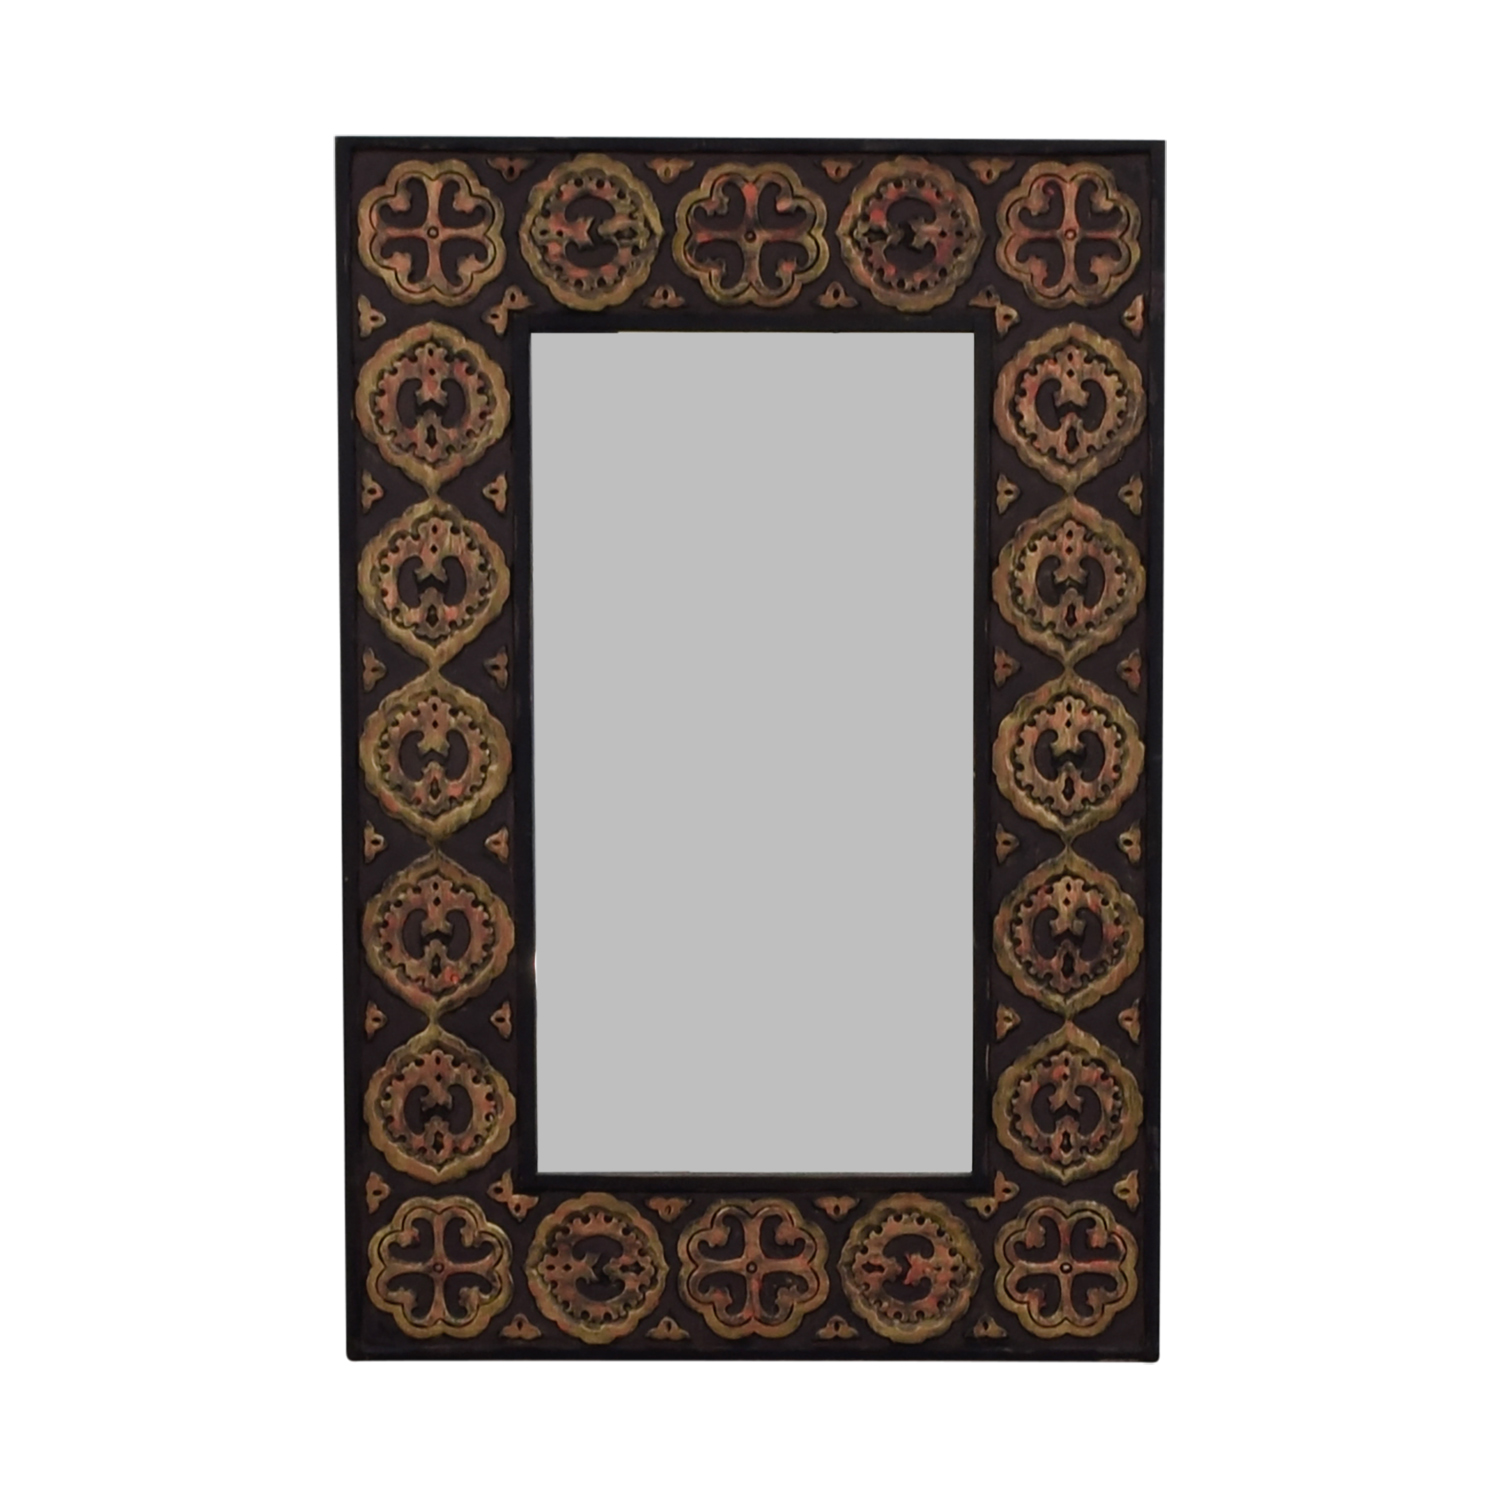 buy Pier 1 Imports Pier One Imports Mirror With Rustic Gold Emblemed Frame online